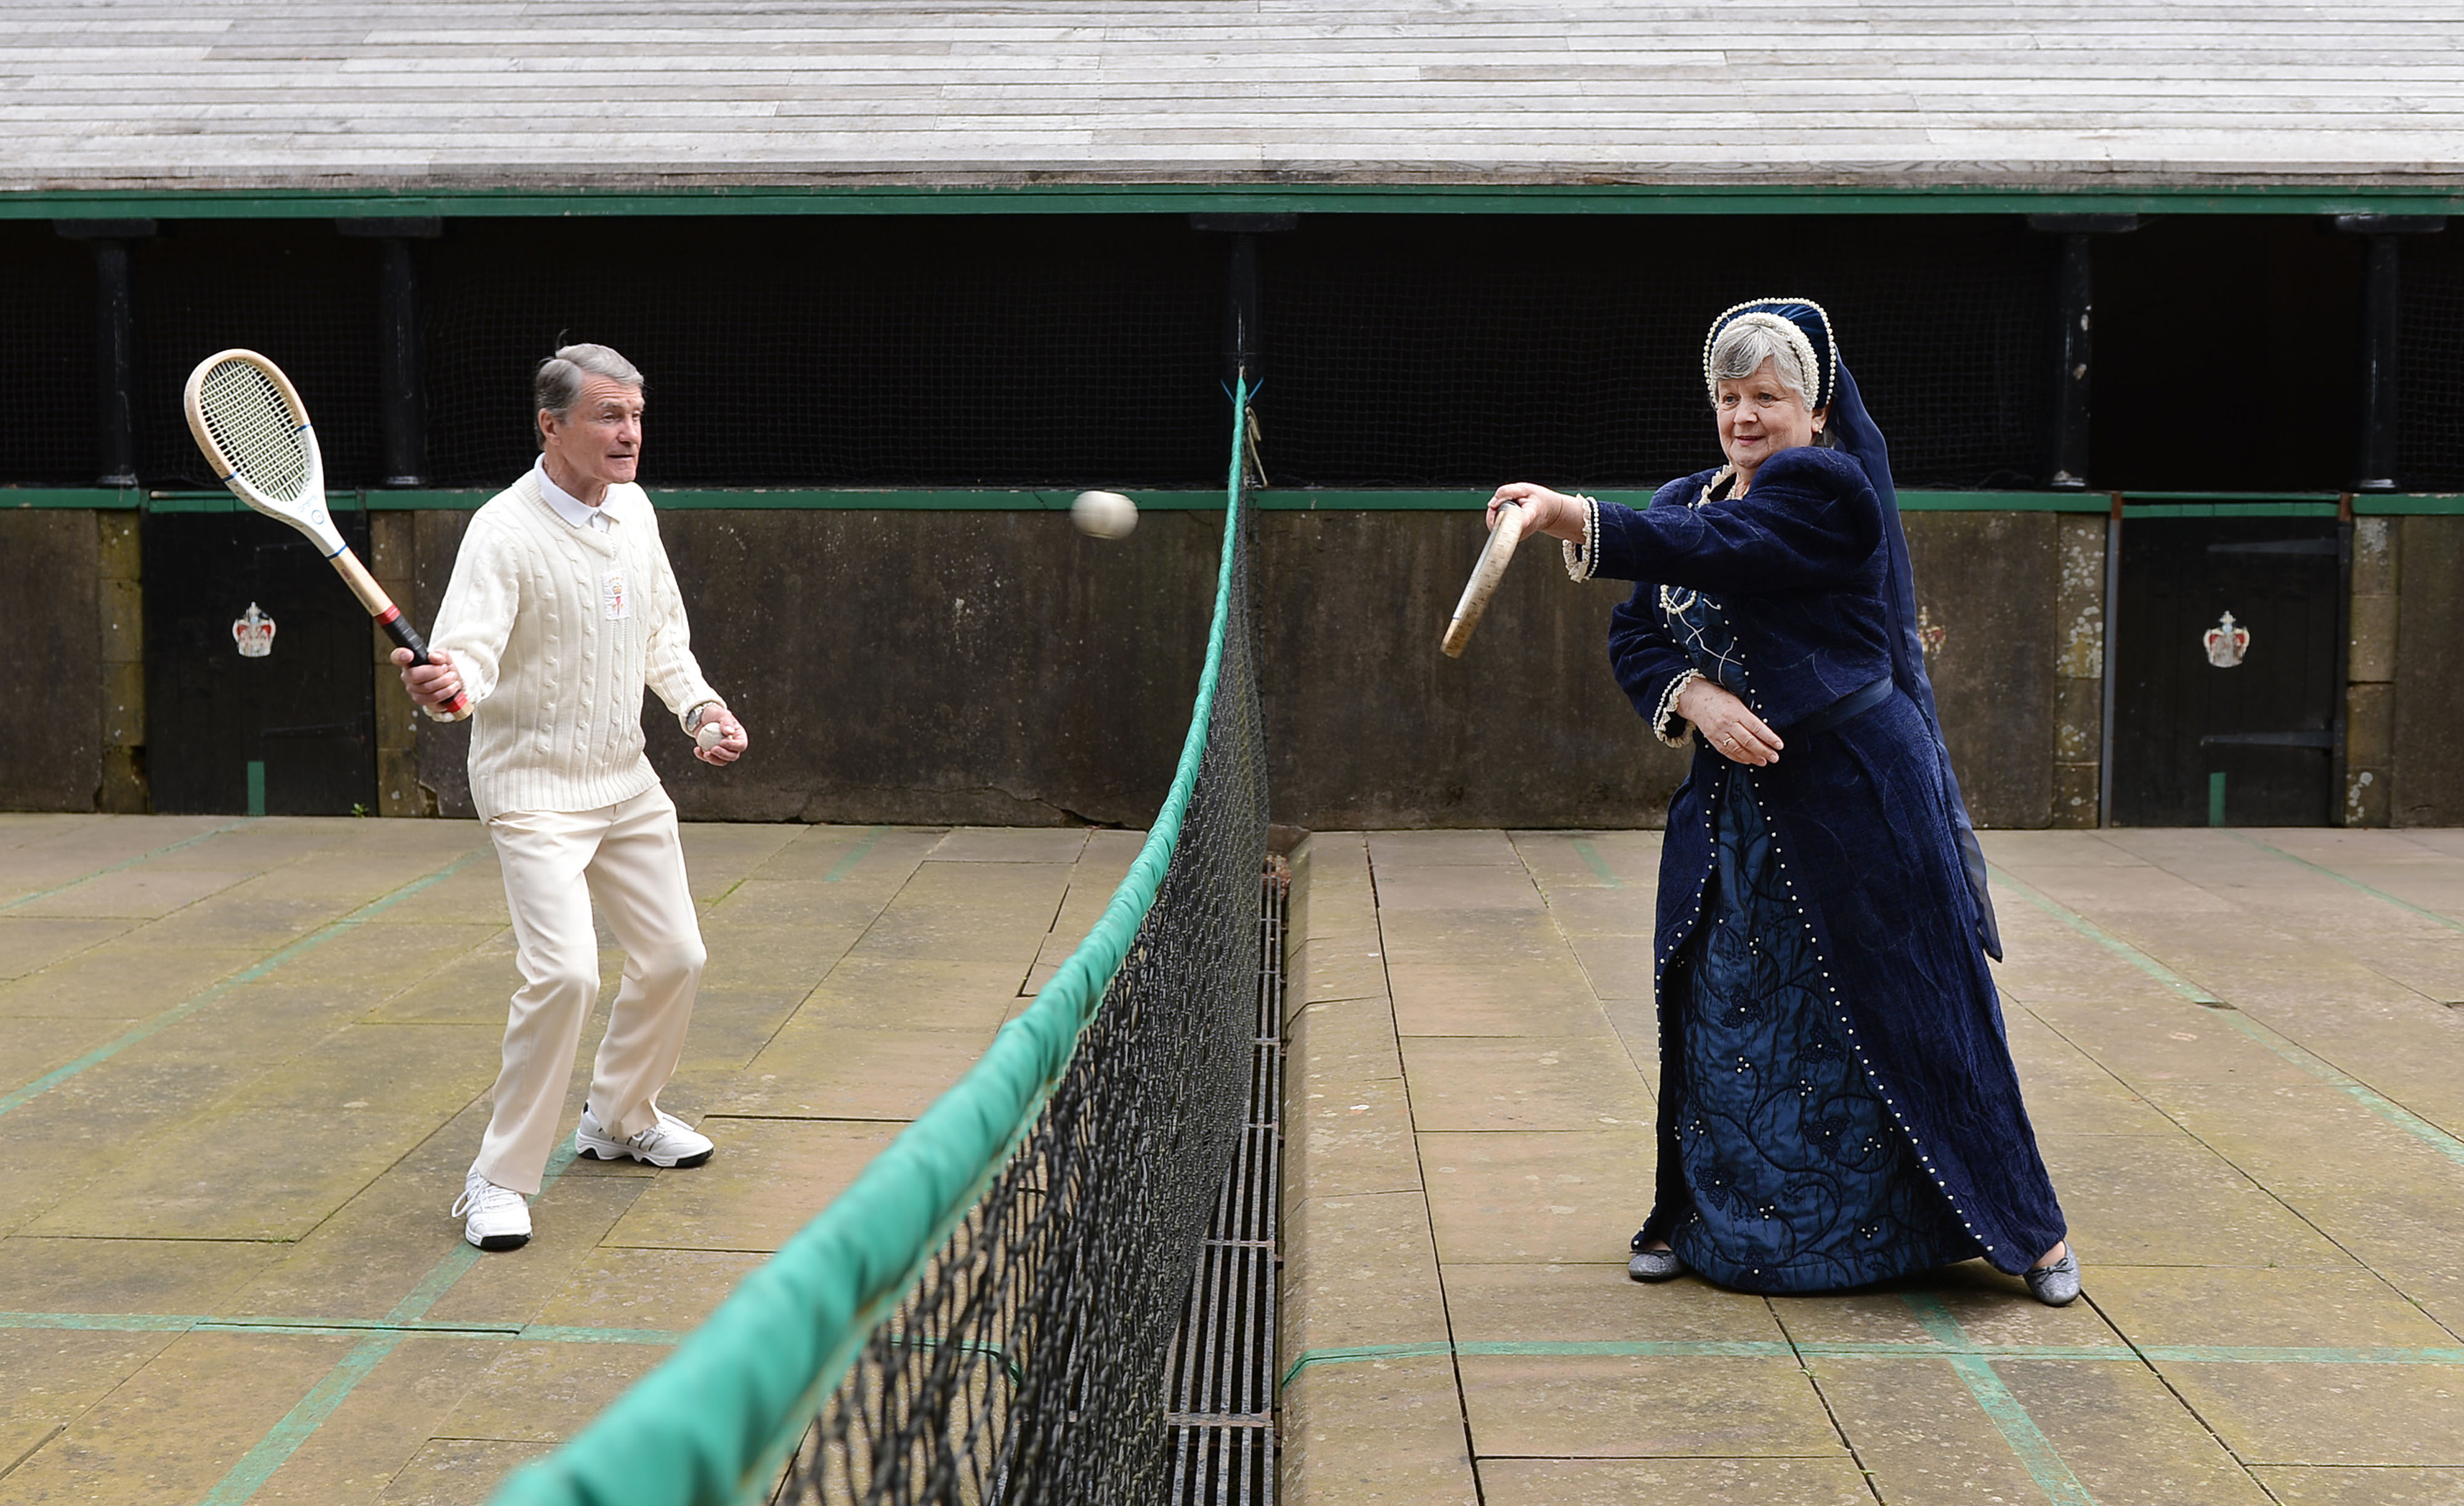 Two costumed characters playing tennis